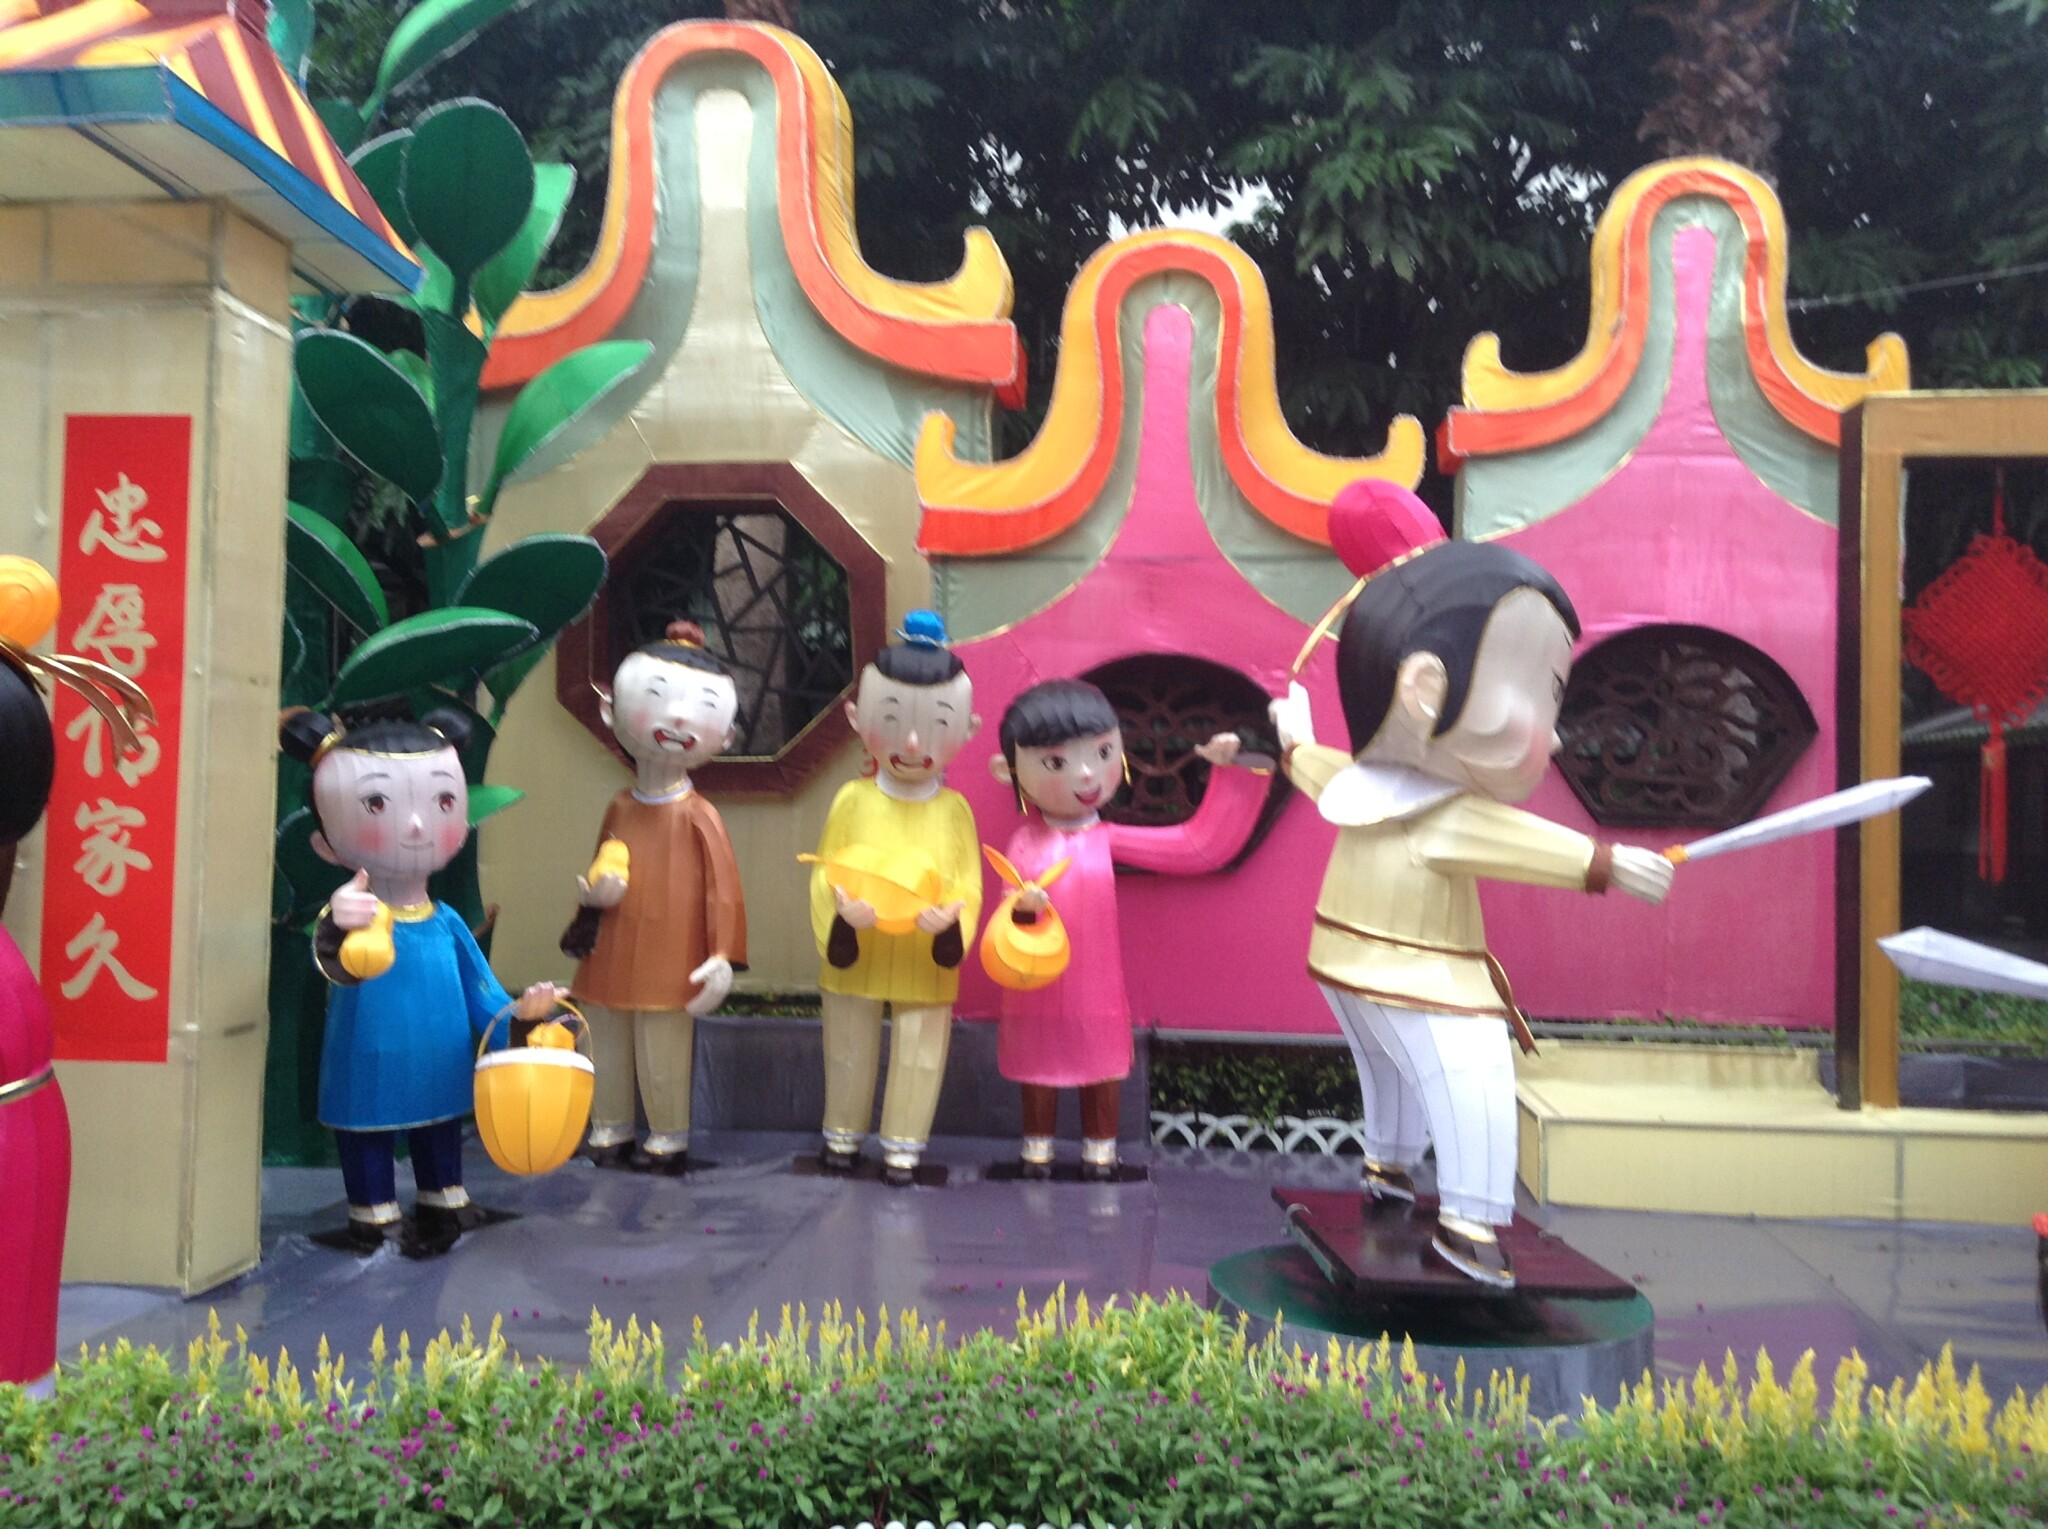 Cute Cartoon Characters to Celebrate Zhong qiu jie in Guangzhou Cultural Park-1